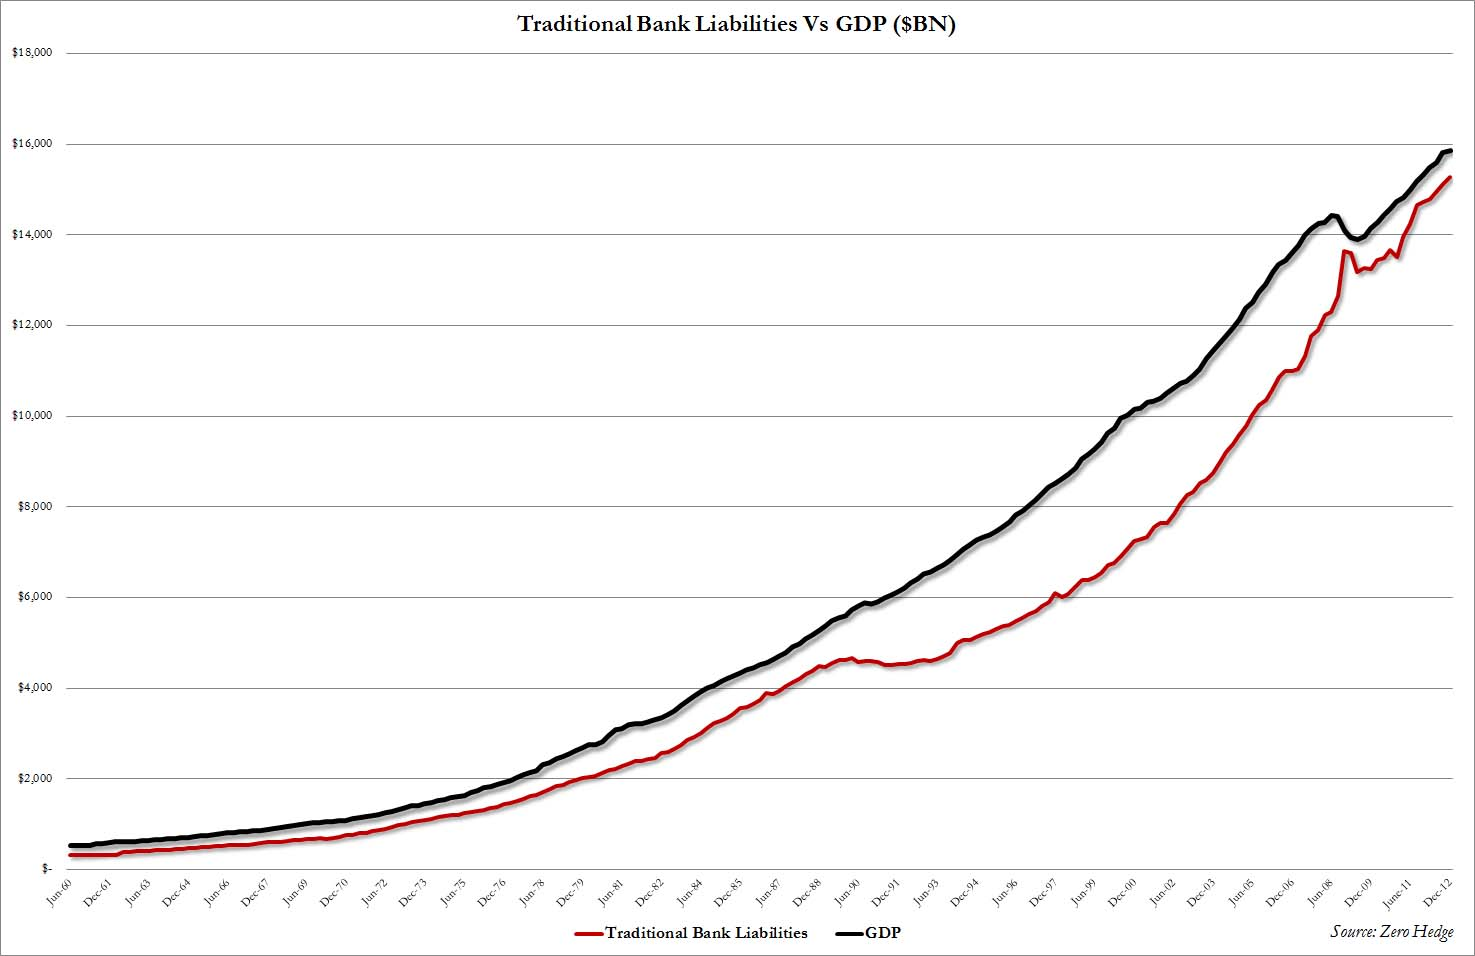 GDP vs Liabilities